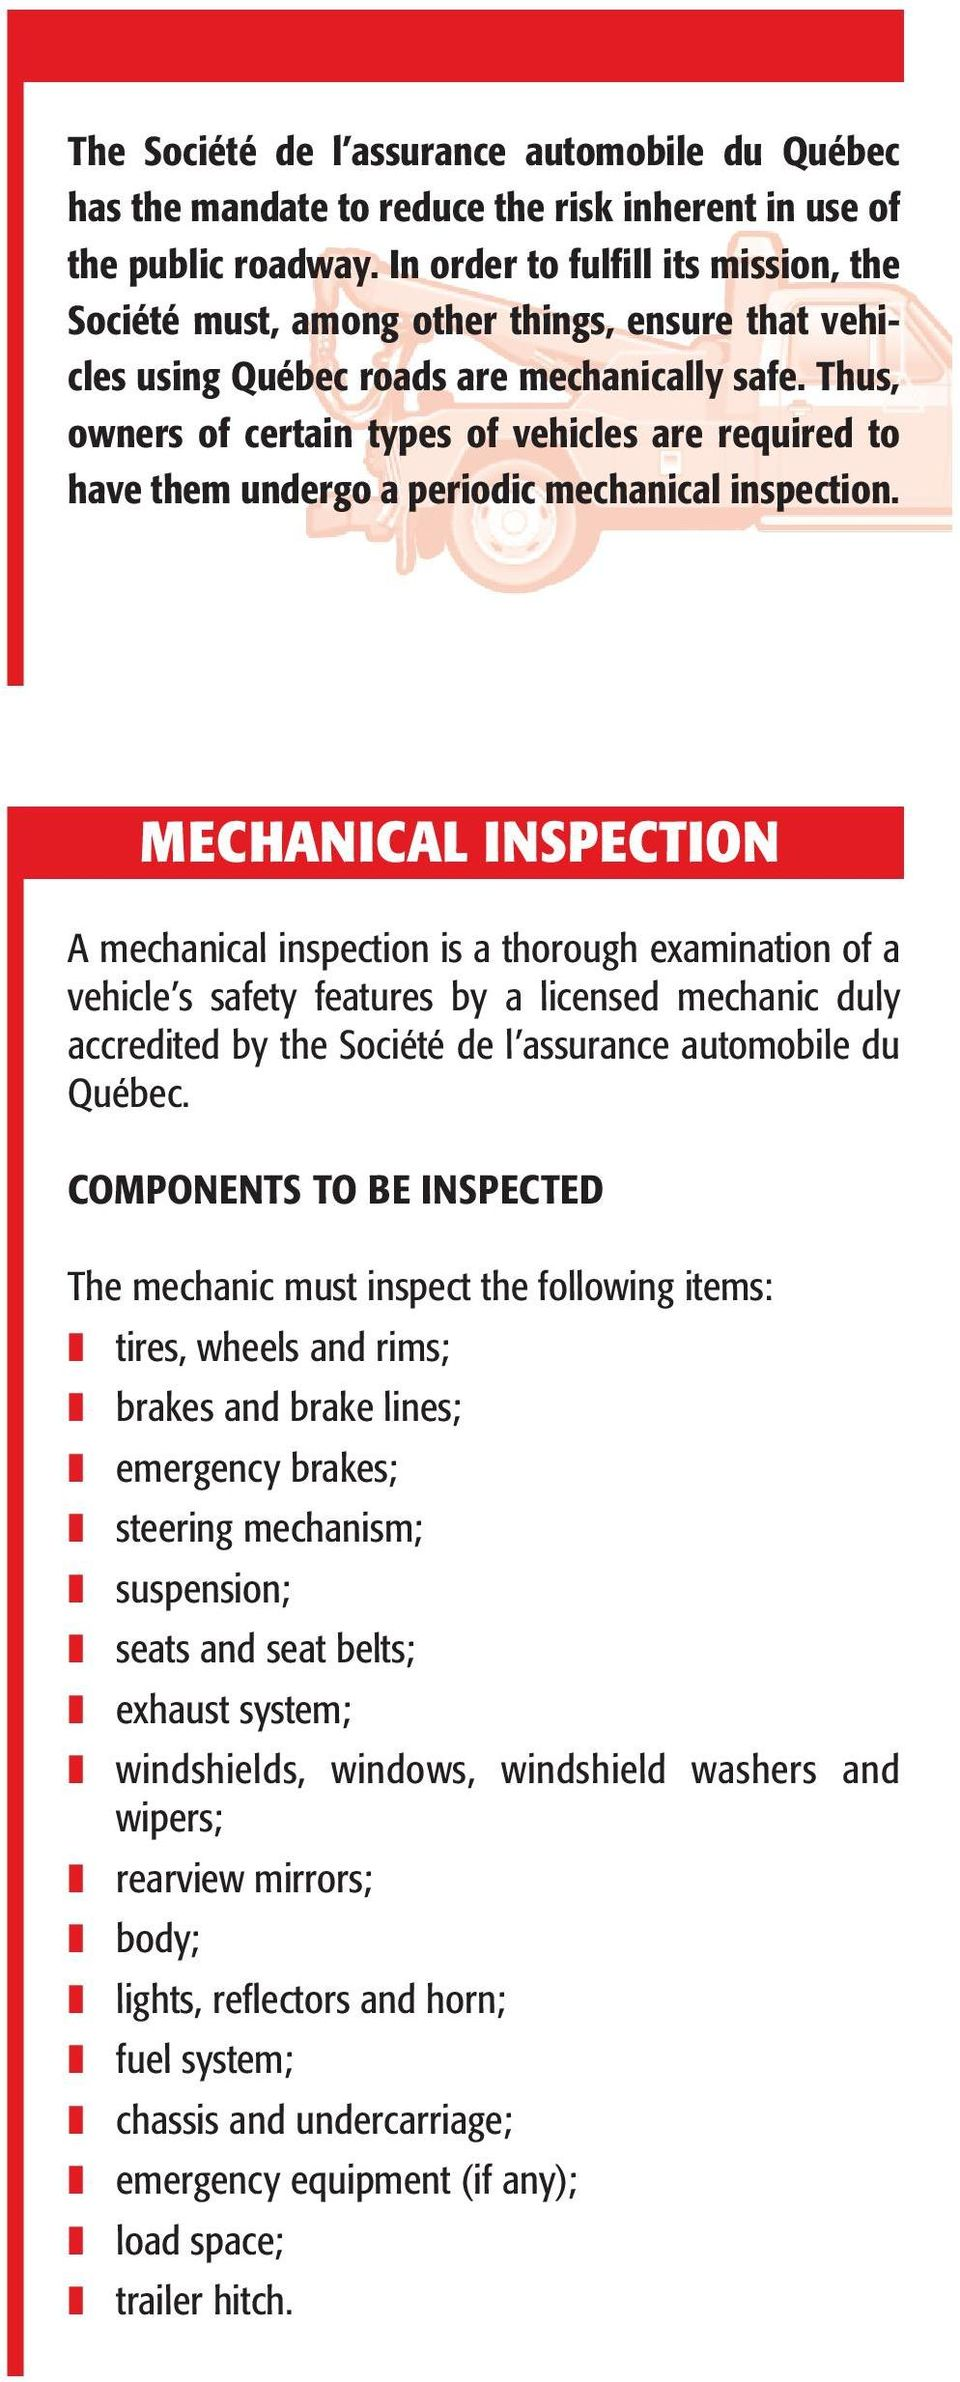 Thus, owners of certain types of vehicles are required to have them undergo a periodic mechanical inspection.